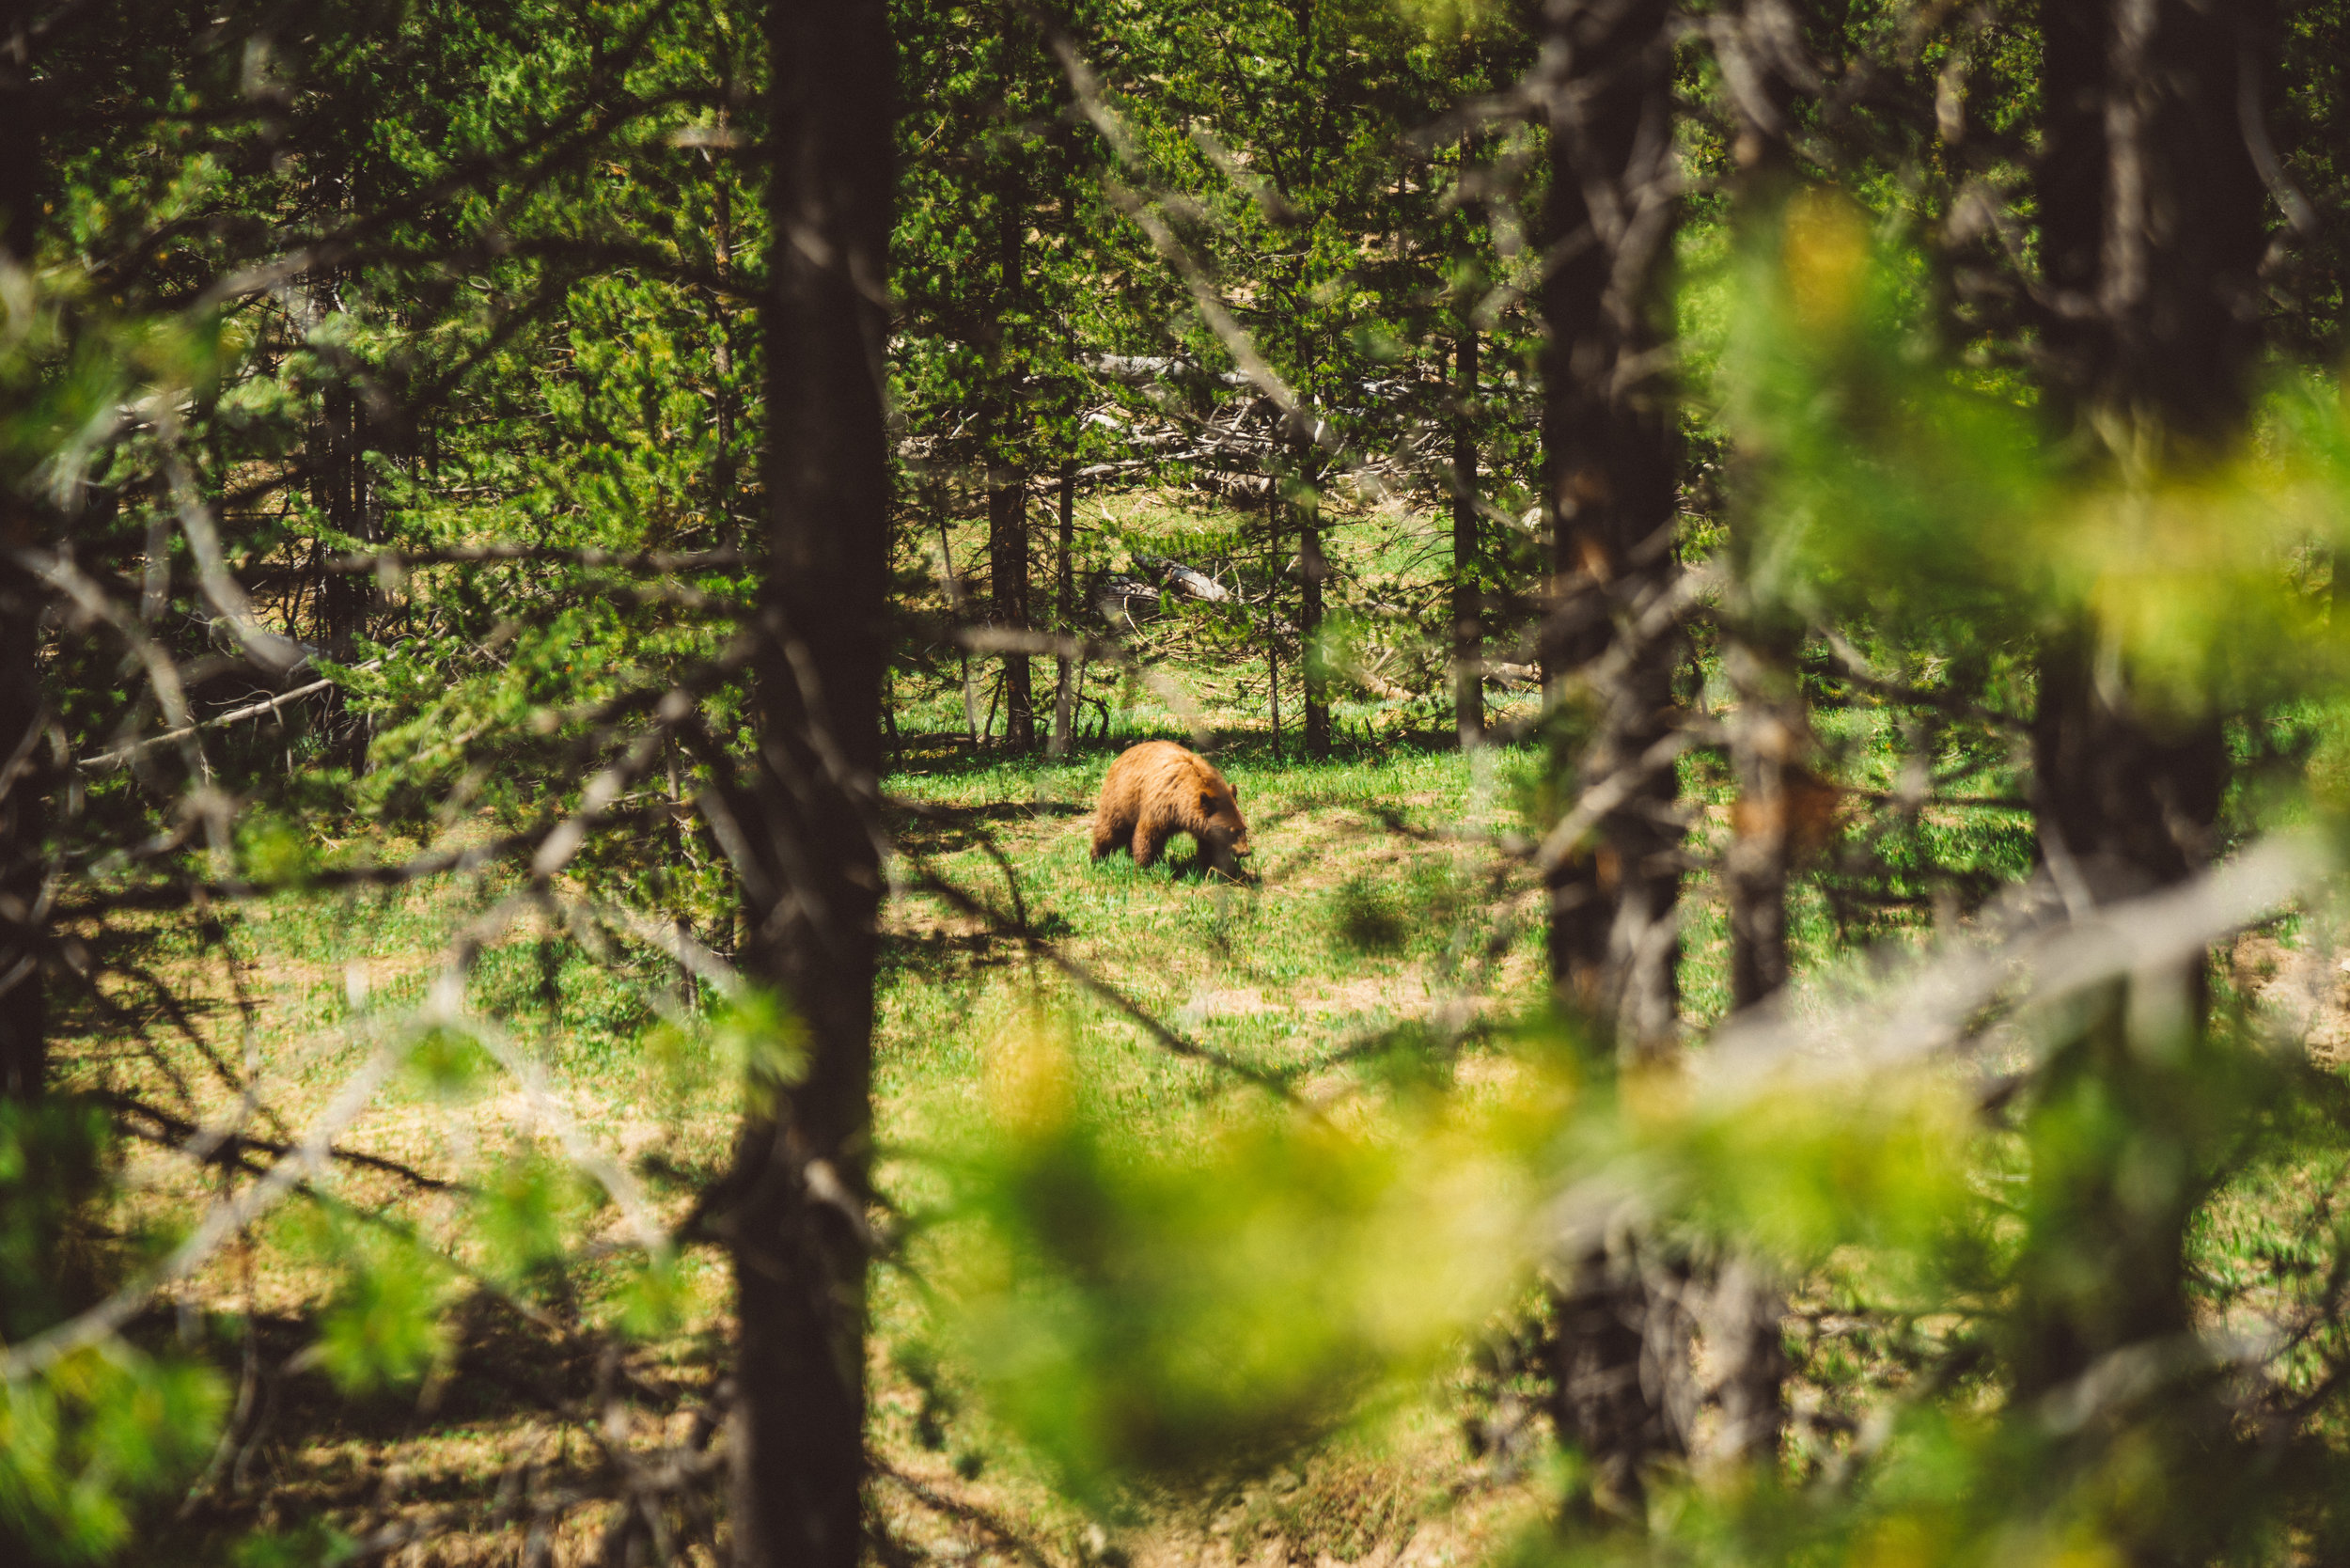 Cinnamon Brown Bear we spotted before our hike.